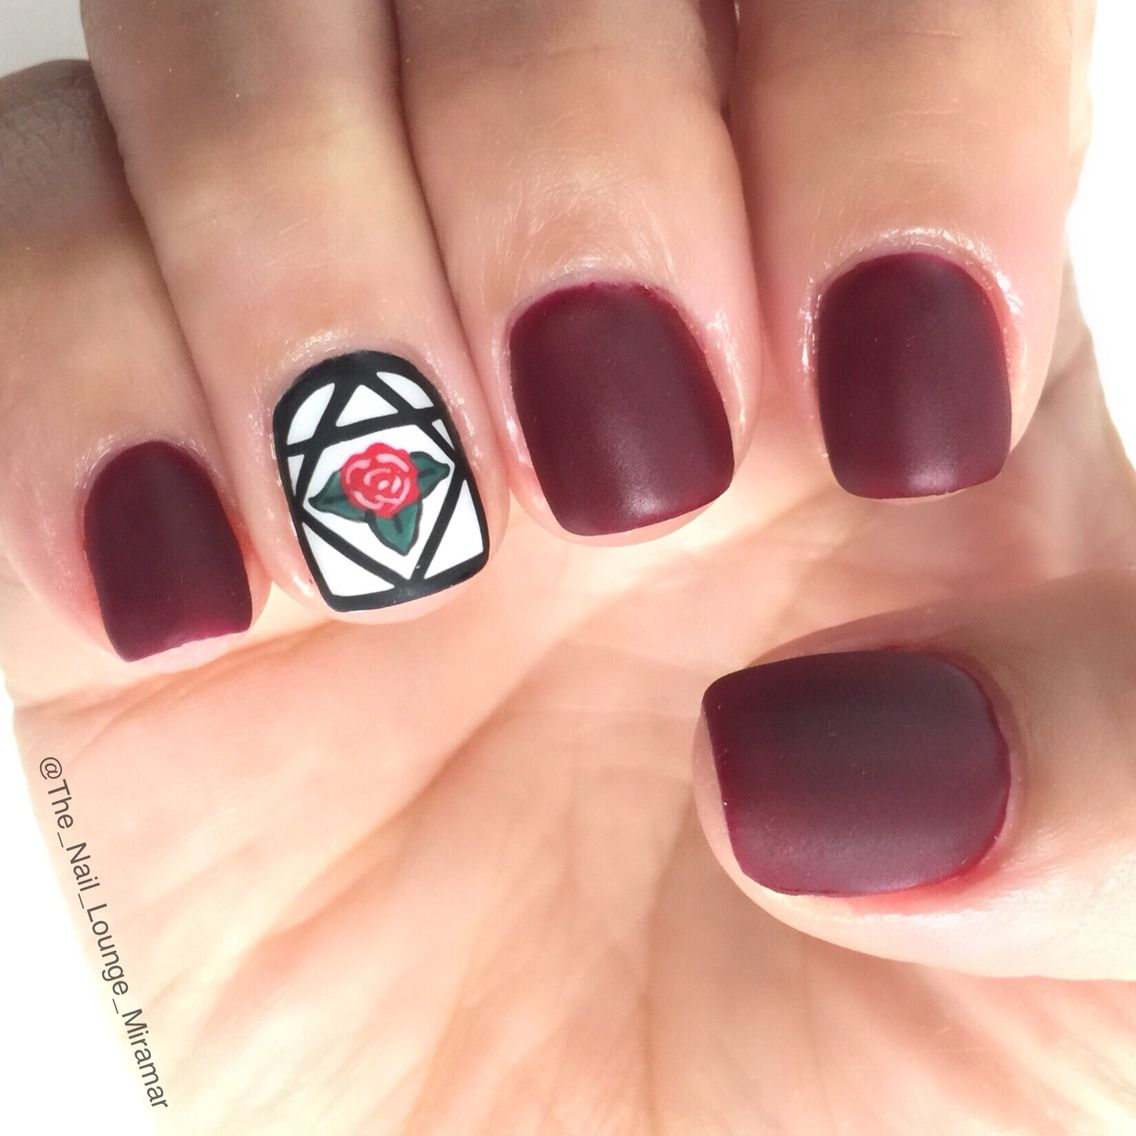 Beauty and the beast rose inspired matte nail art design | Nail Art ...